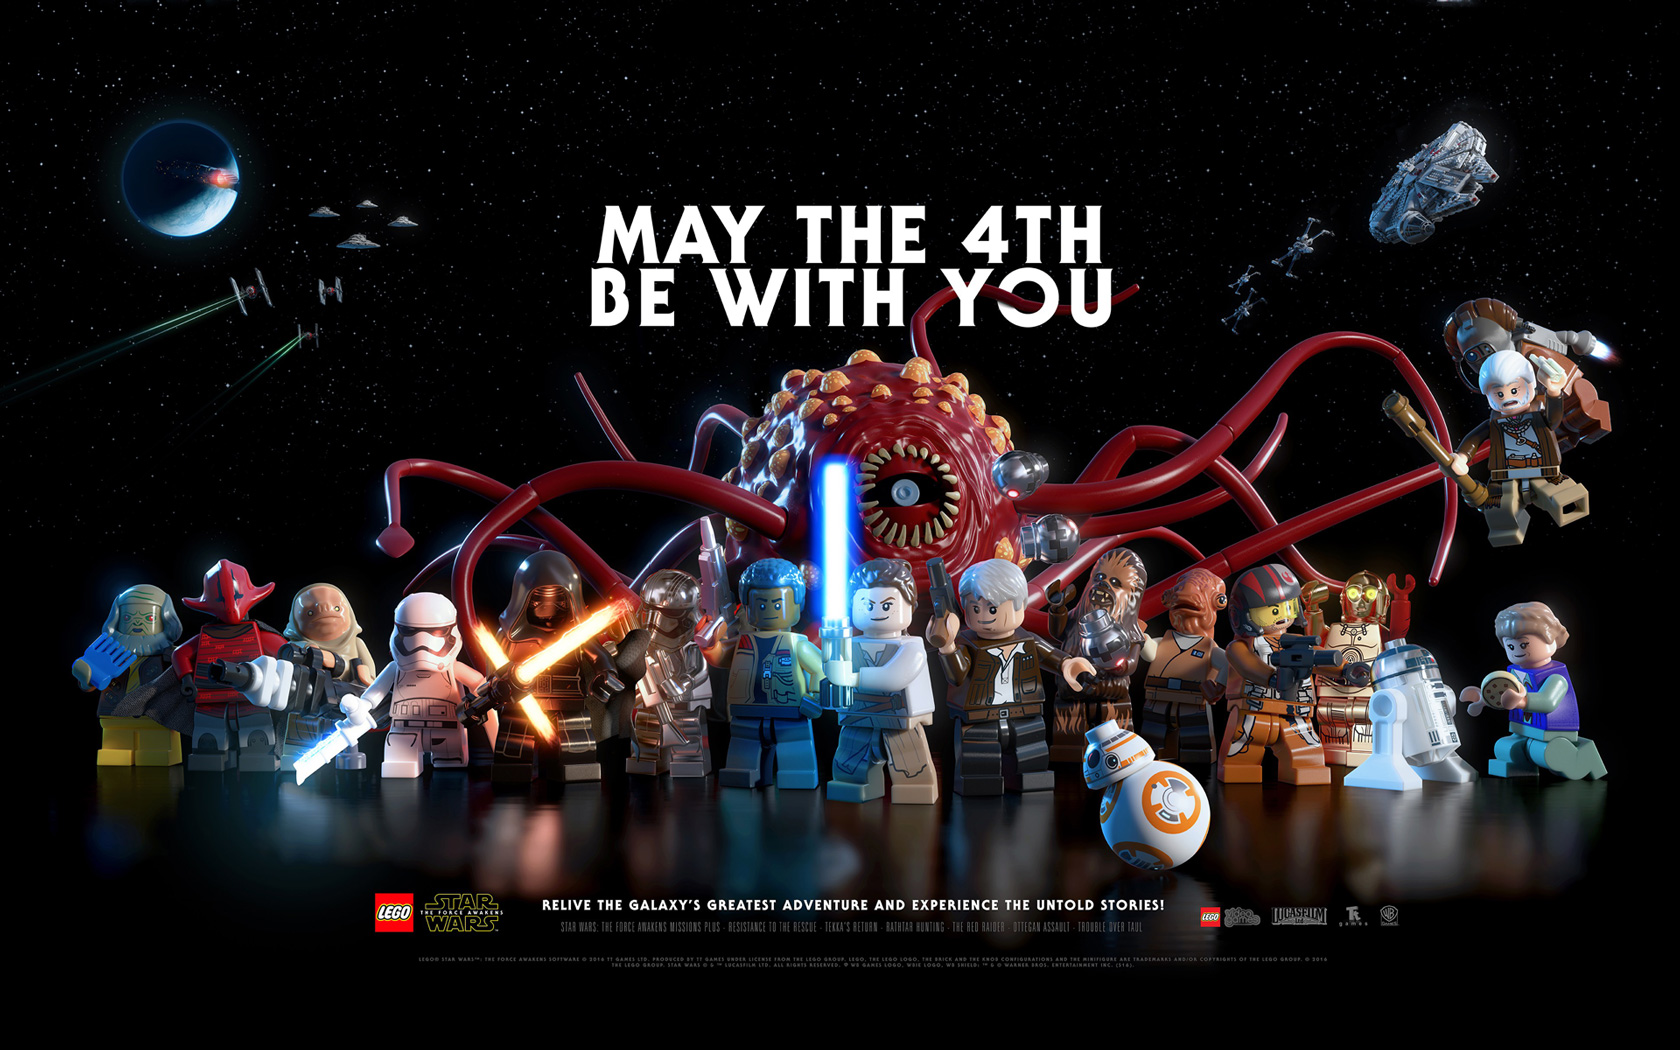 Lego Star Wars: The Force Awakens Wallpaper in 1680x1050